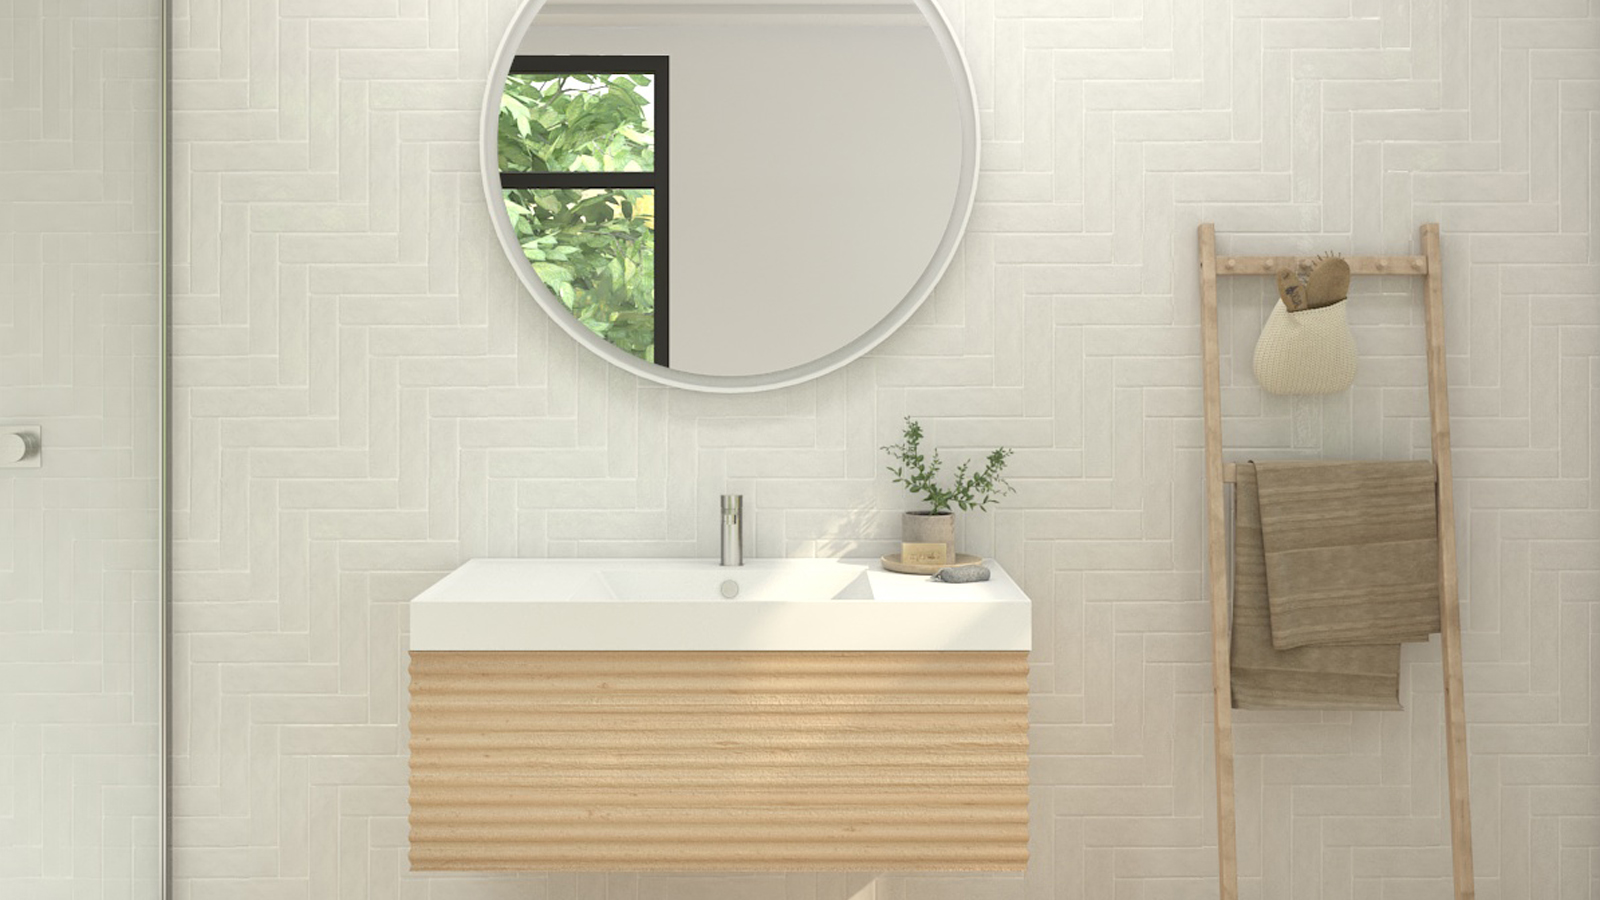 Krion Shell + Waves single unit + Krion One countertop Porcelanosa